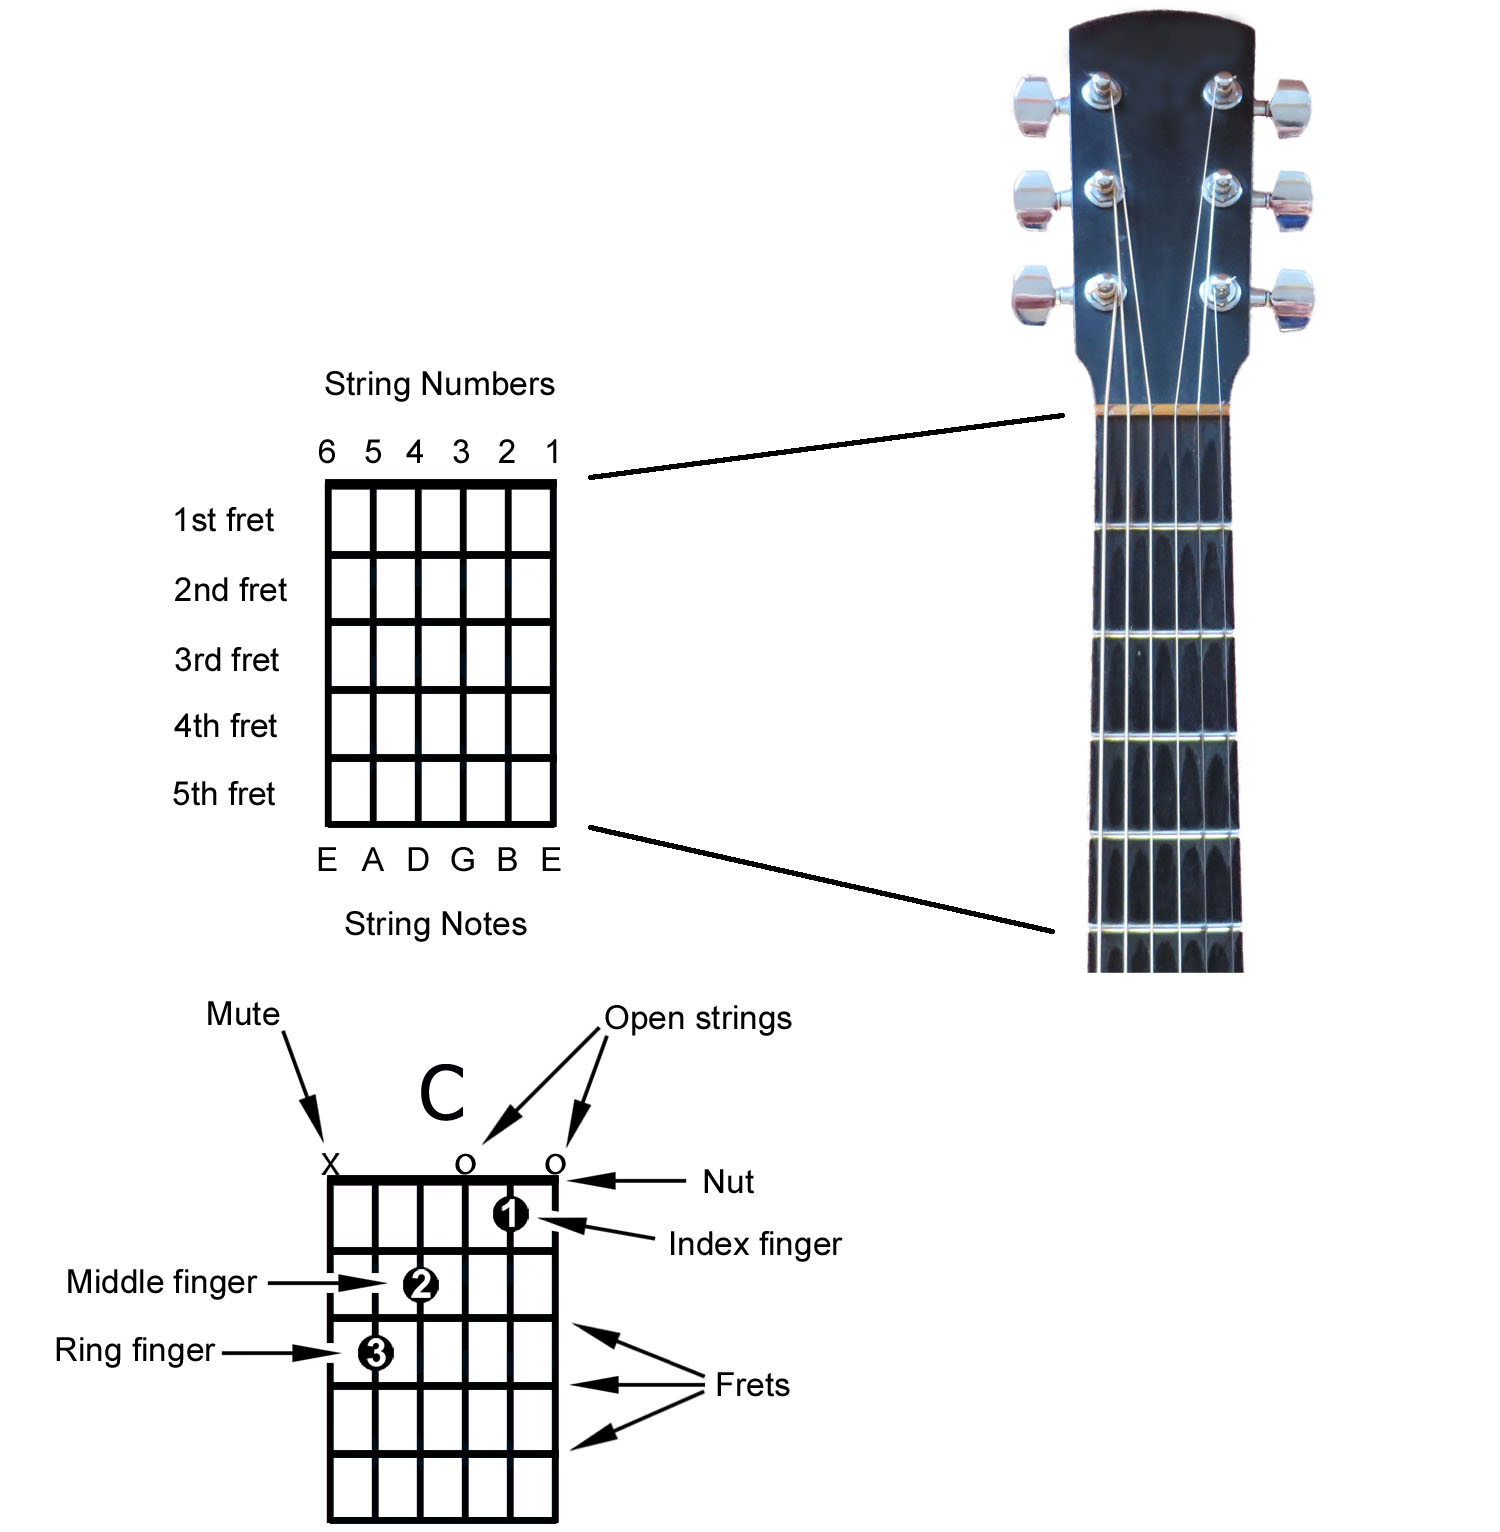 Three Dots Between Thumb And Index Finger: How To Read A Chord Diagram